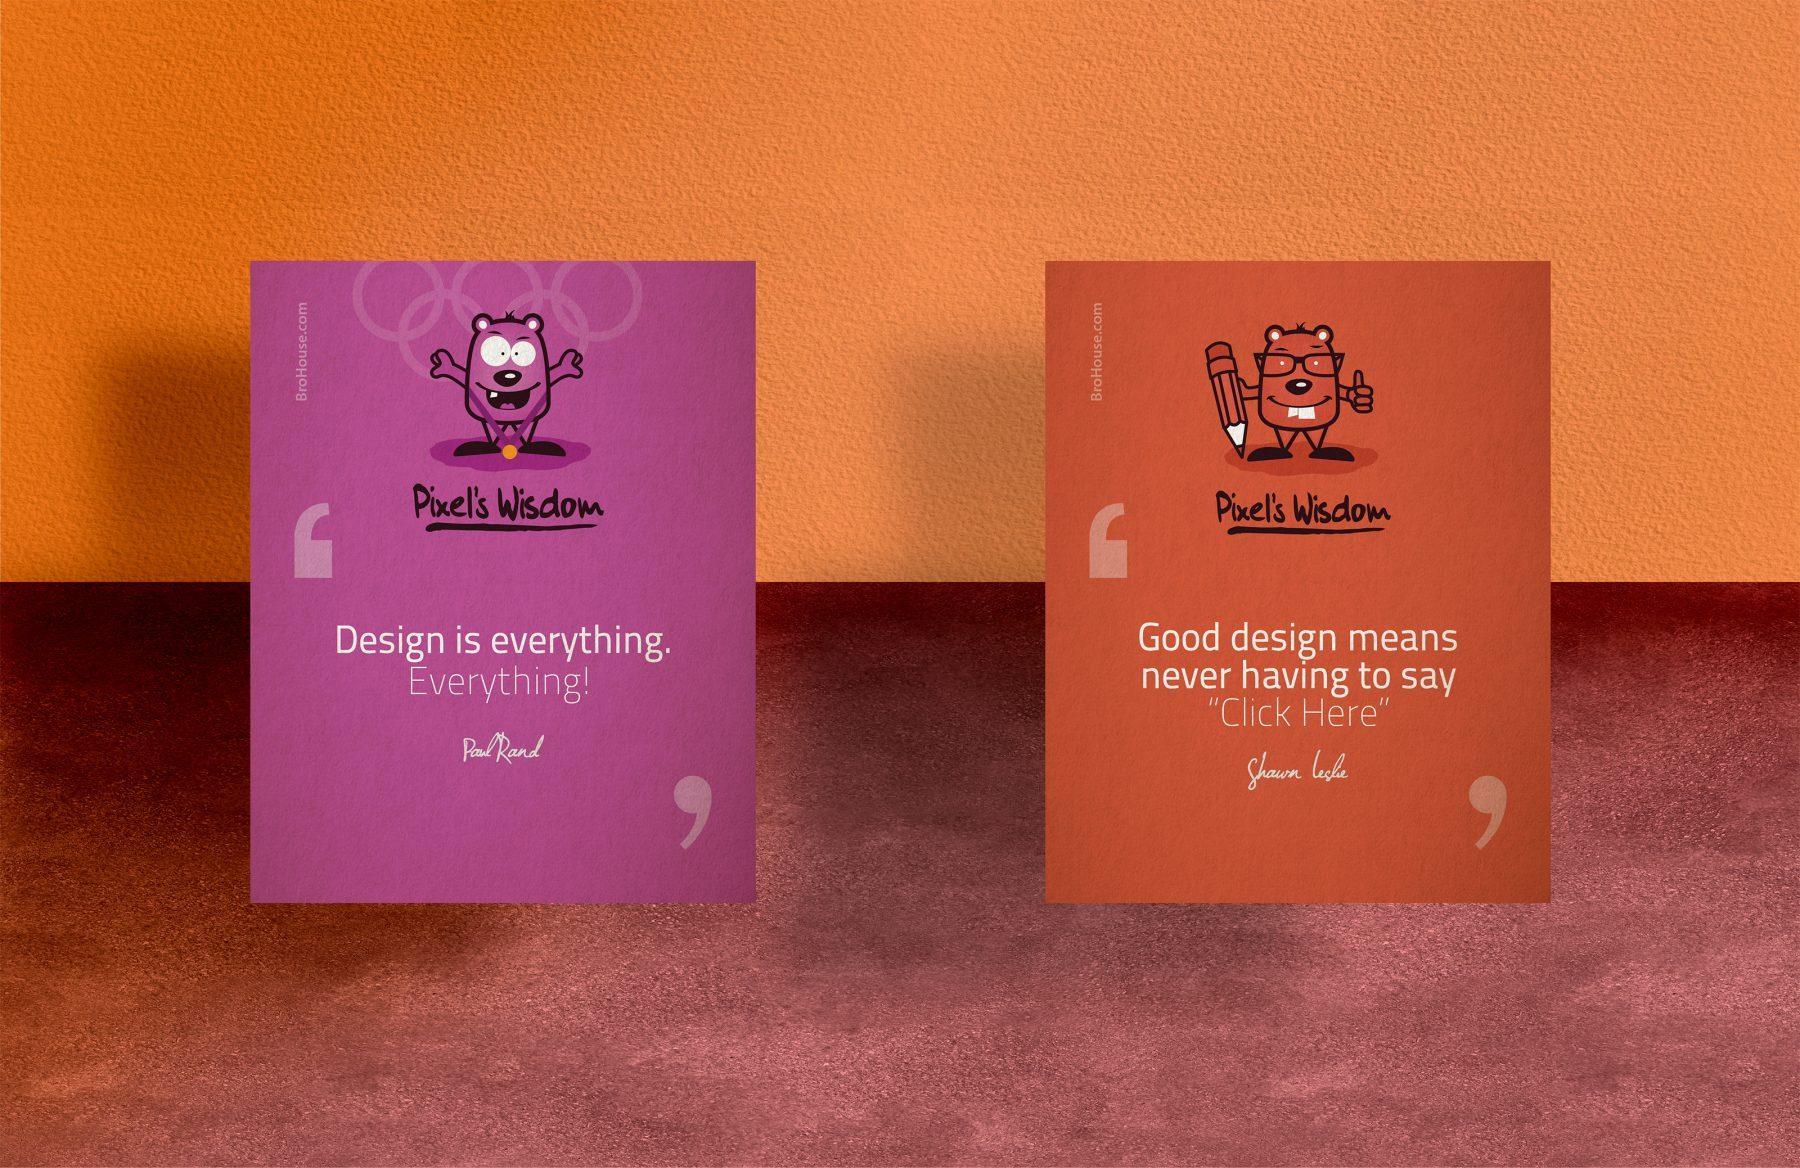 Famous Quotes From The World Of Design In Unique Illustrations Brohouse,Room Wallpaper 3d Wallpaper Design With Price